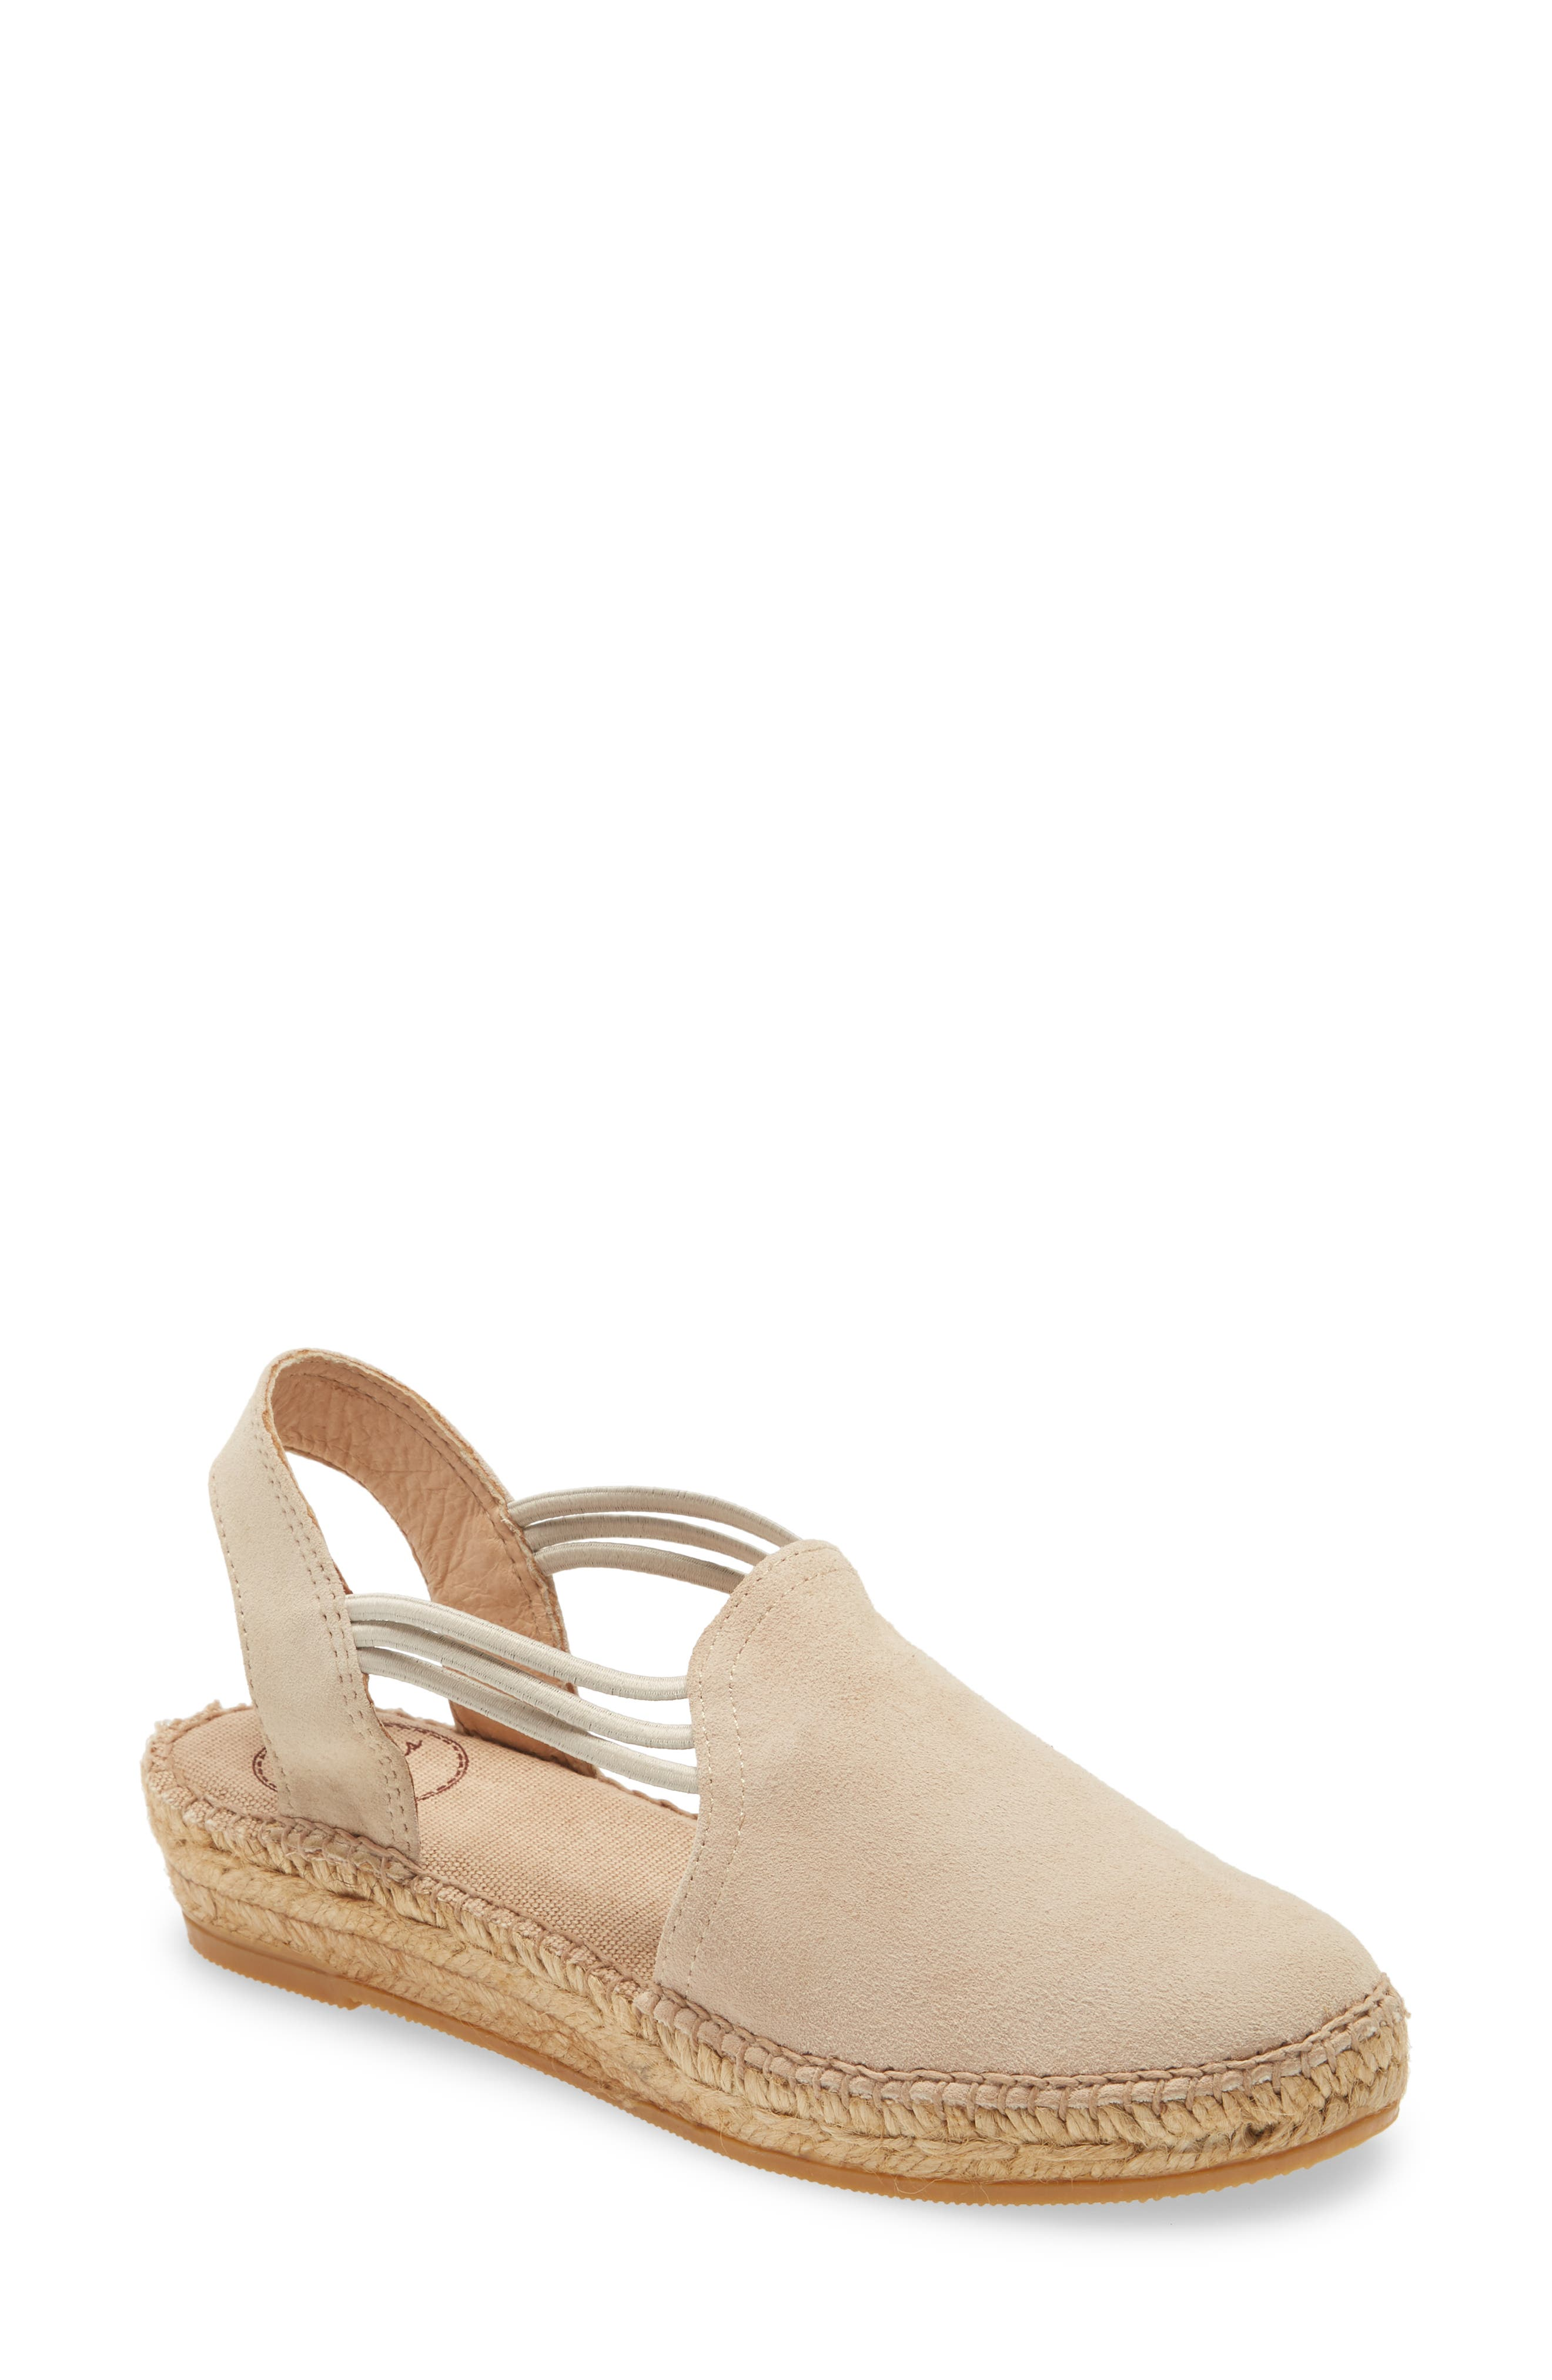 Sophistication and ease combine on this chic sandal from Toni Pons, a company that has been making stylish espadrilles for over 50 years. With a leather-lined toe box and elastic bands for a comfy, custom fit, you\\\'ll want to wear this sandal all summer long. Style Name: Toni Pons \\\'Nuria\\\' Suede Sandal (Women). Style Number: 1061248. Available in stores.